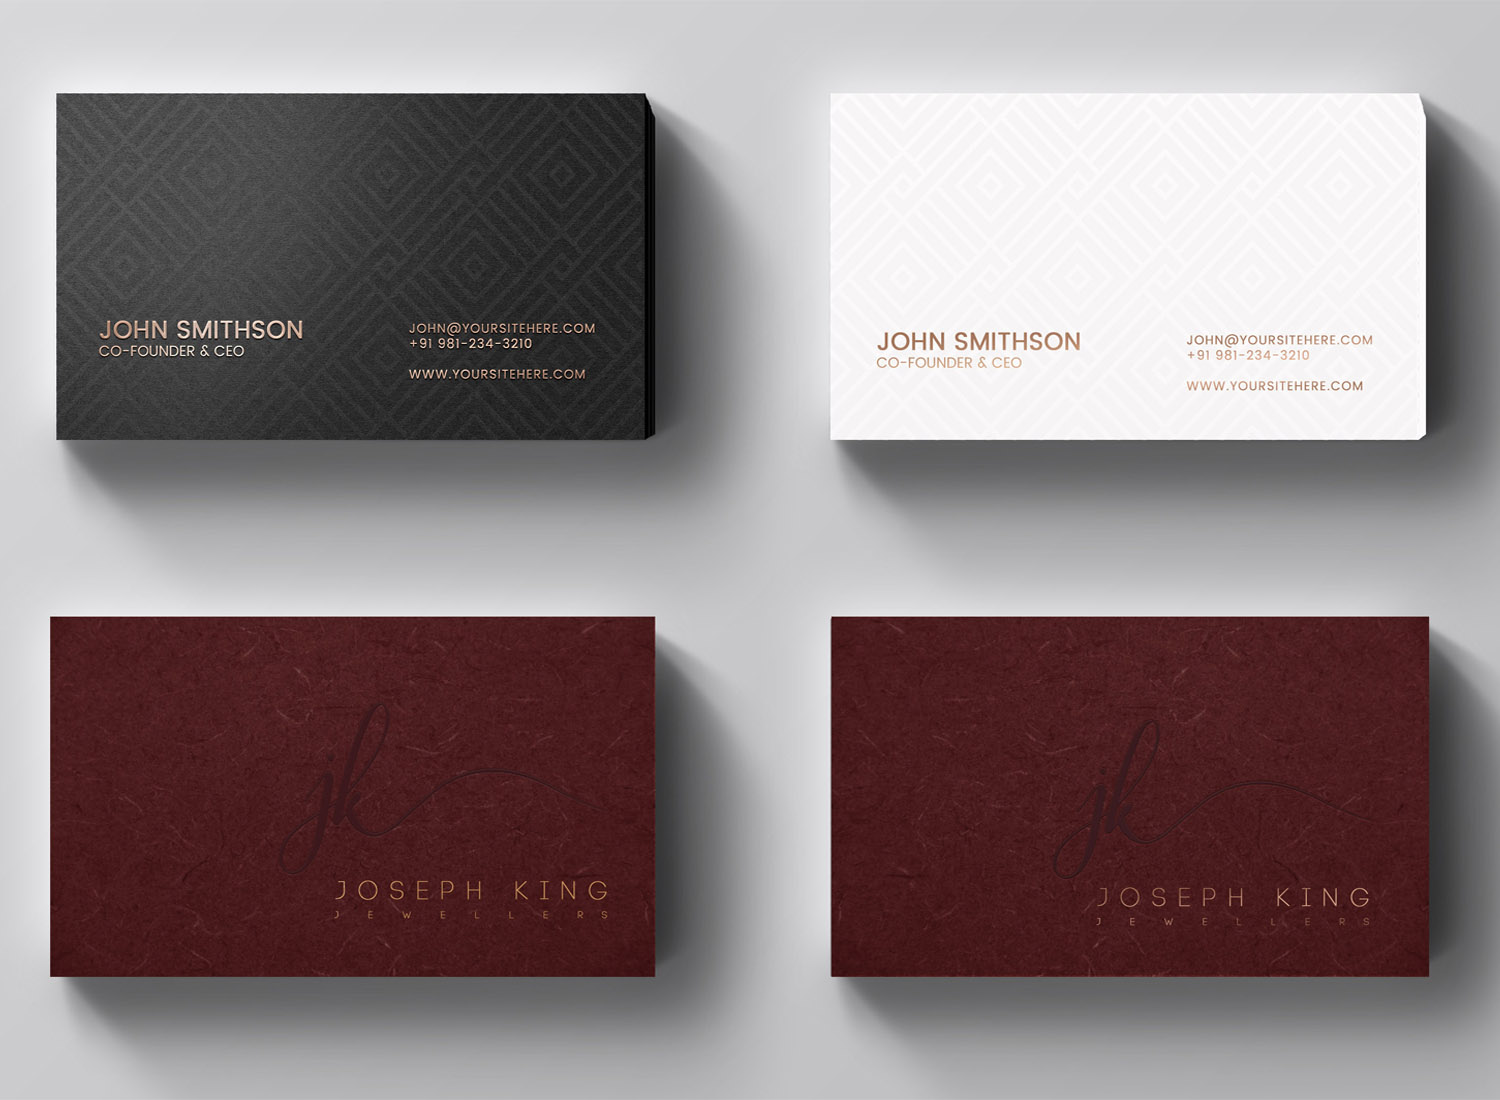 Upmarket Elegant Business Business Card Design For A Company By